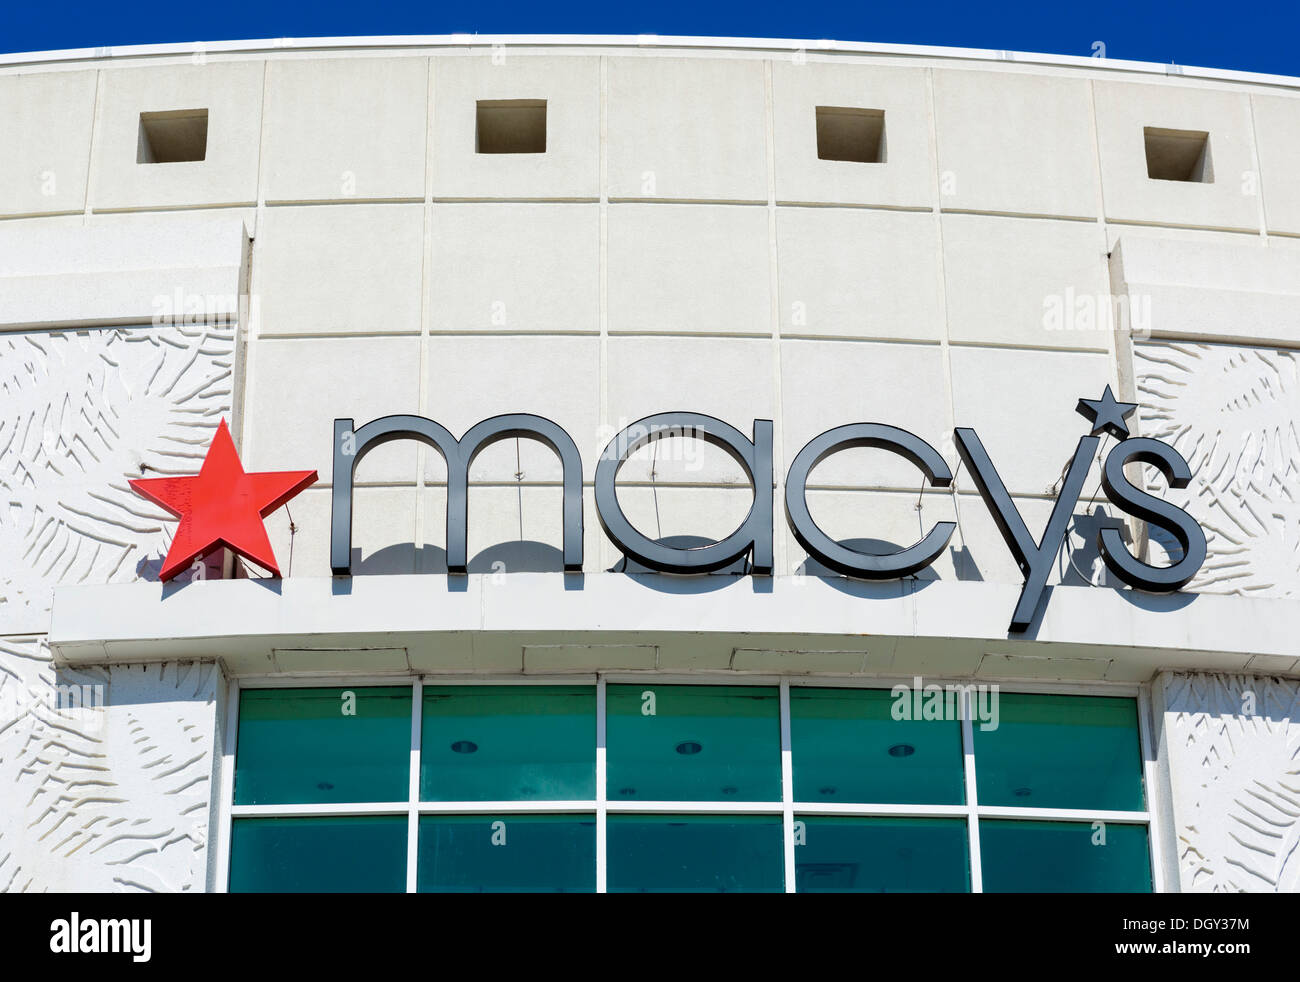 Entrance to Macy's department store at The Florida Mall, Orlando, Central Florida, USA - Stock Image